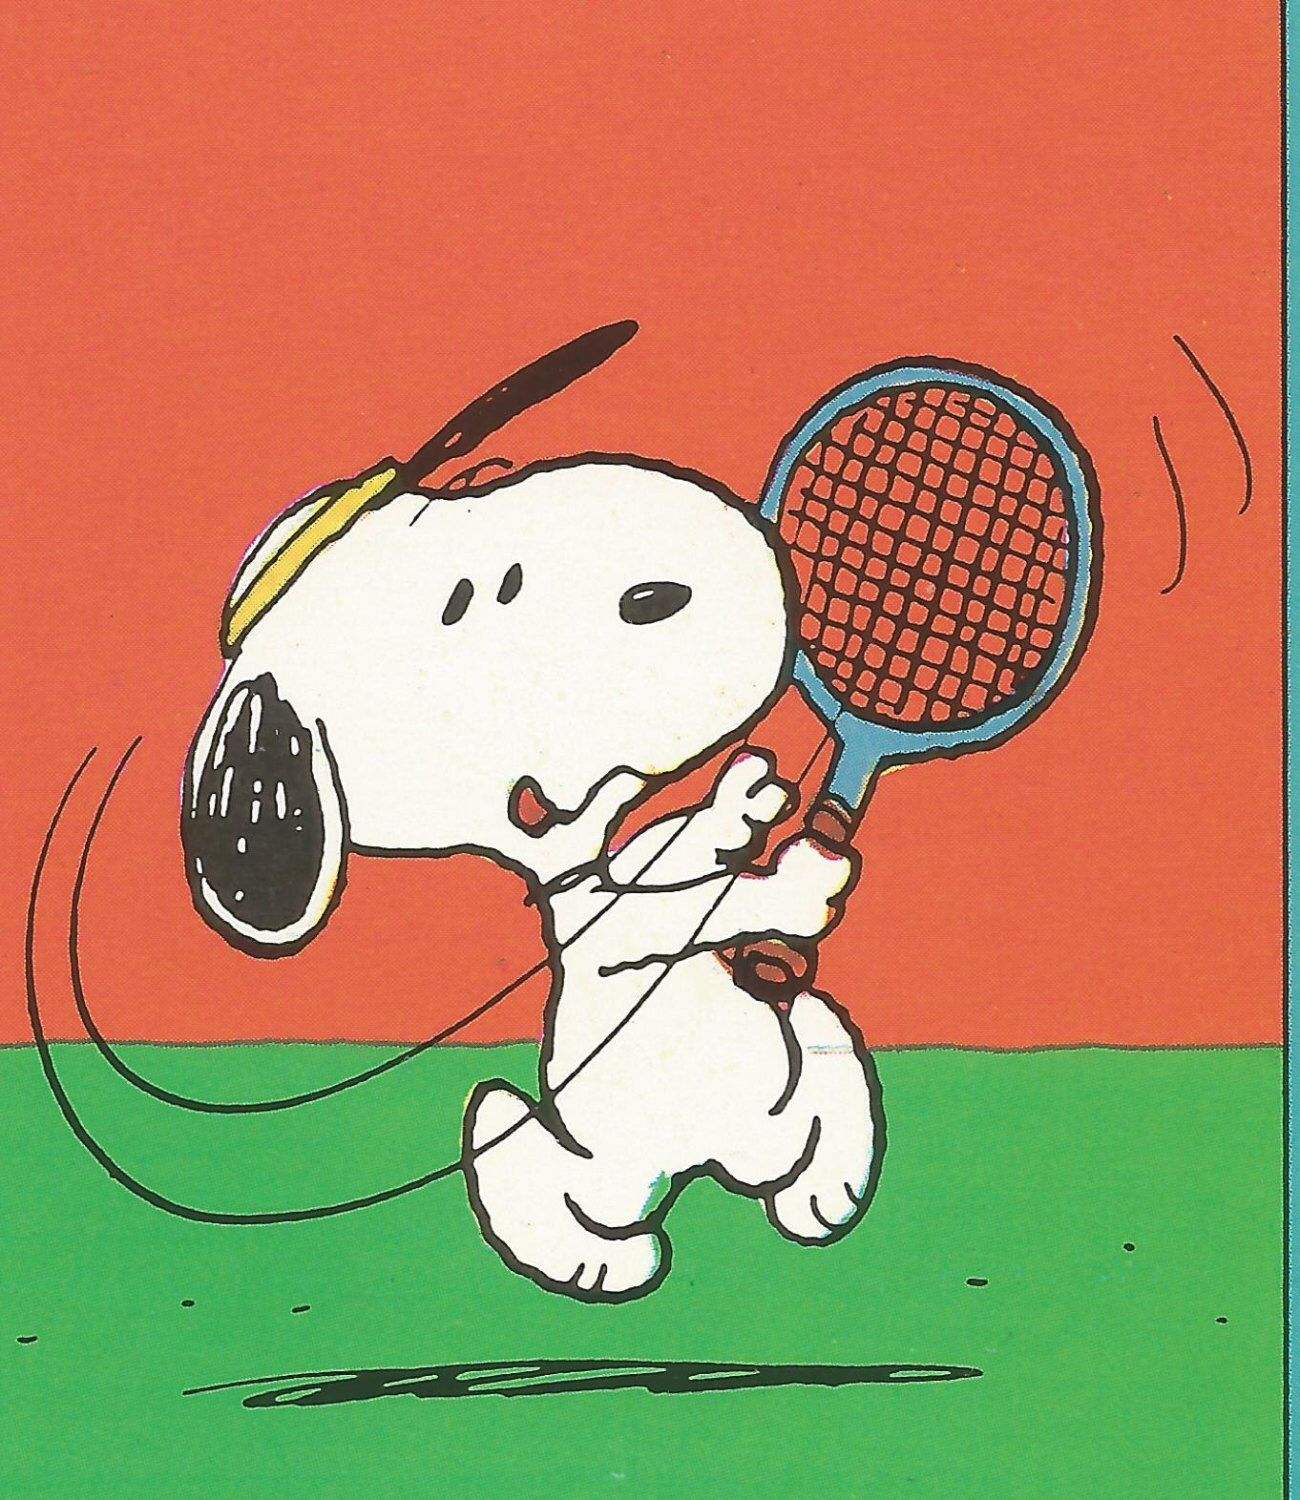 Peanuts Character Snoopy Playing Tennis Refrigerator Magnet New Larger Size Snoopy Cartoon Snoopy Snoopy Comics